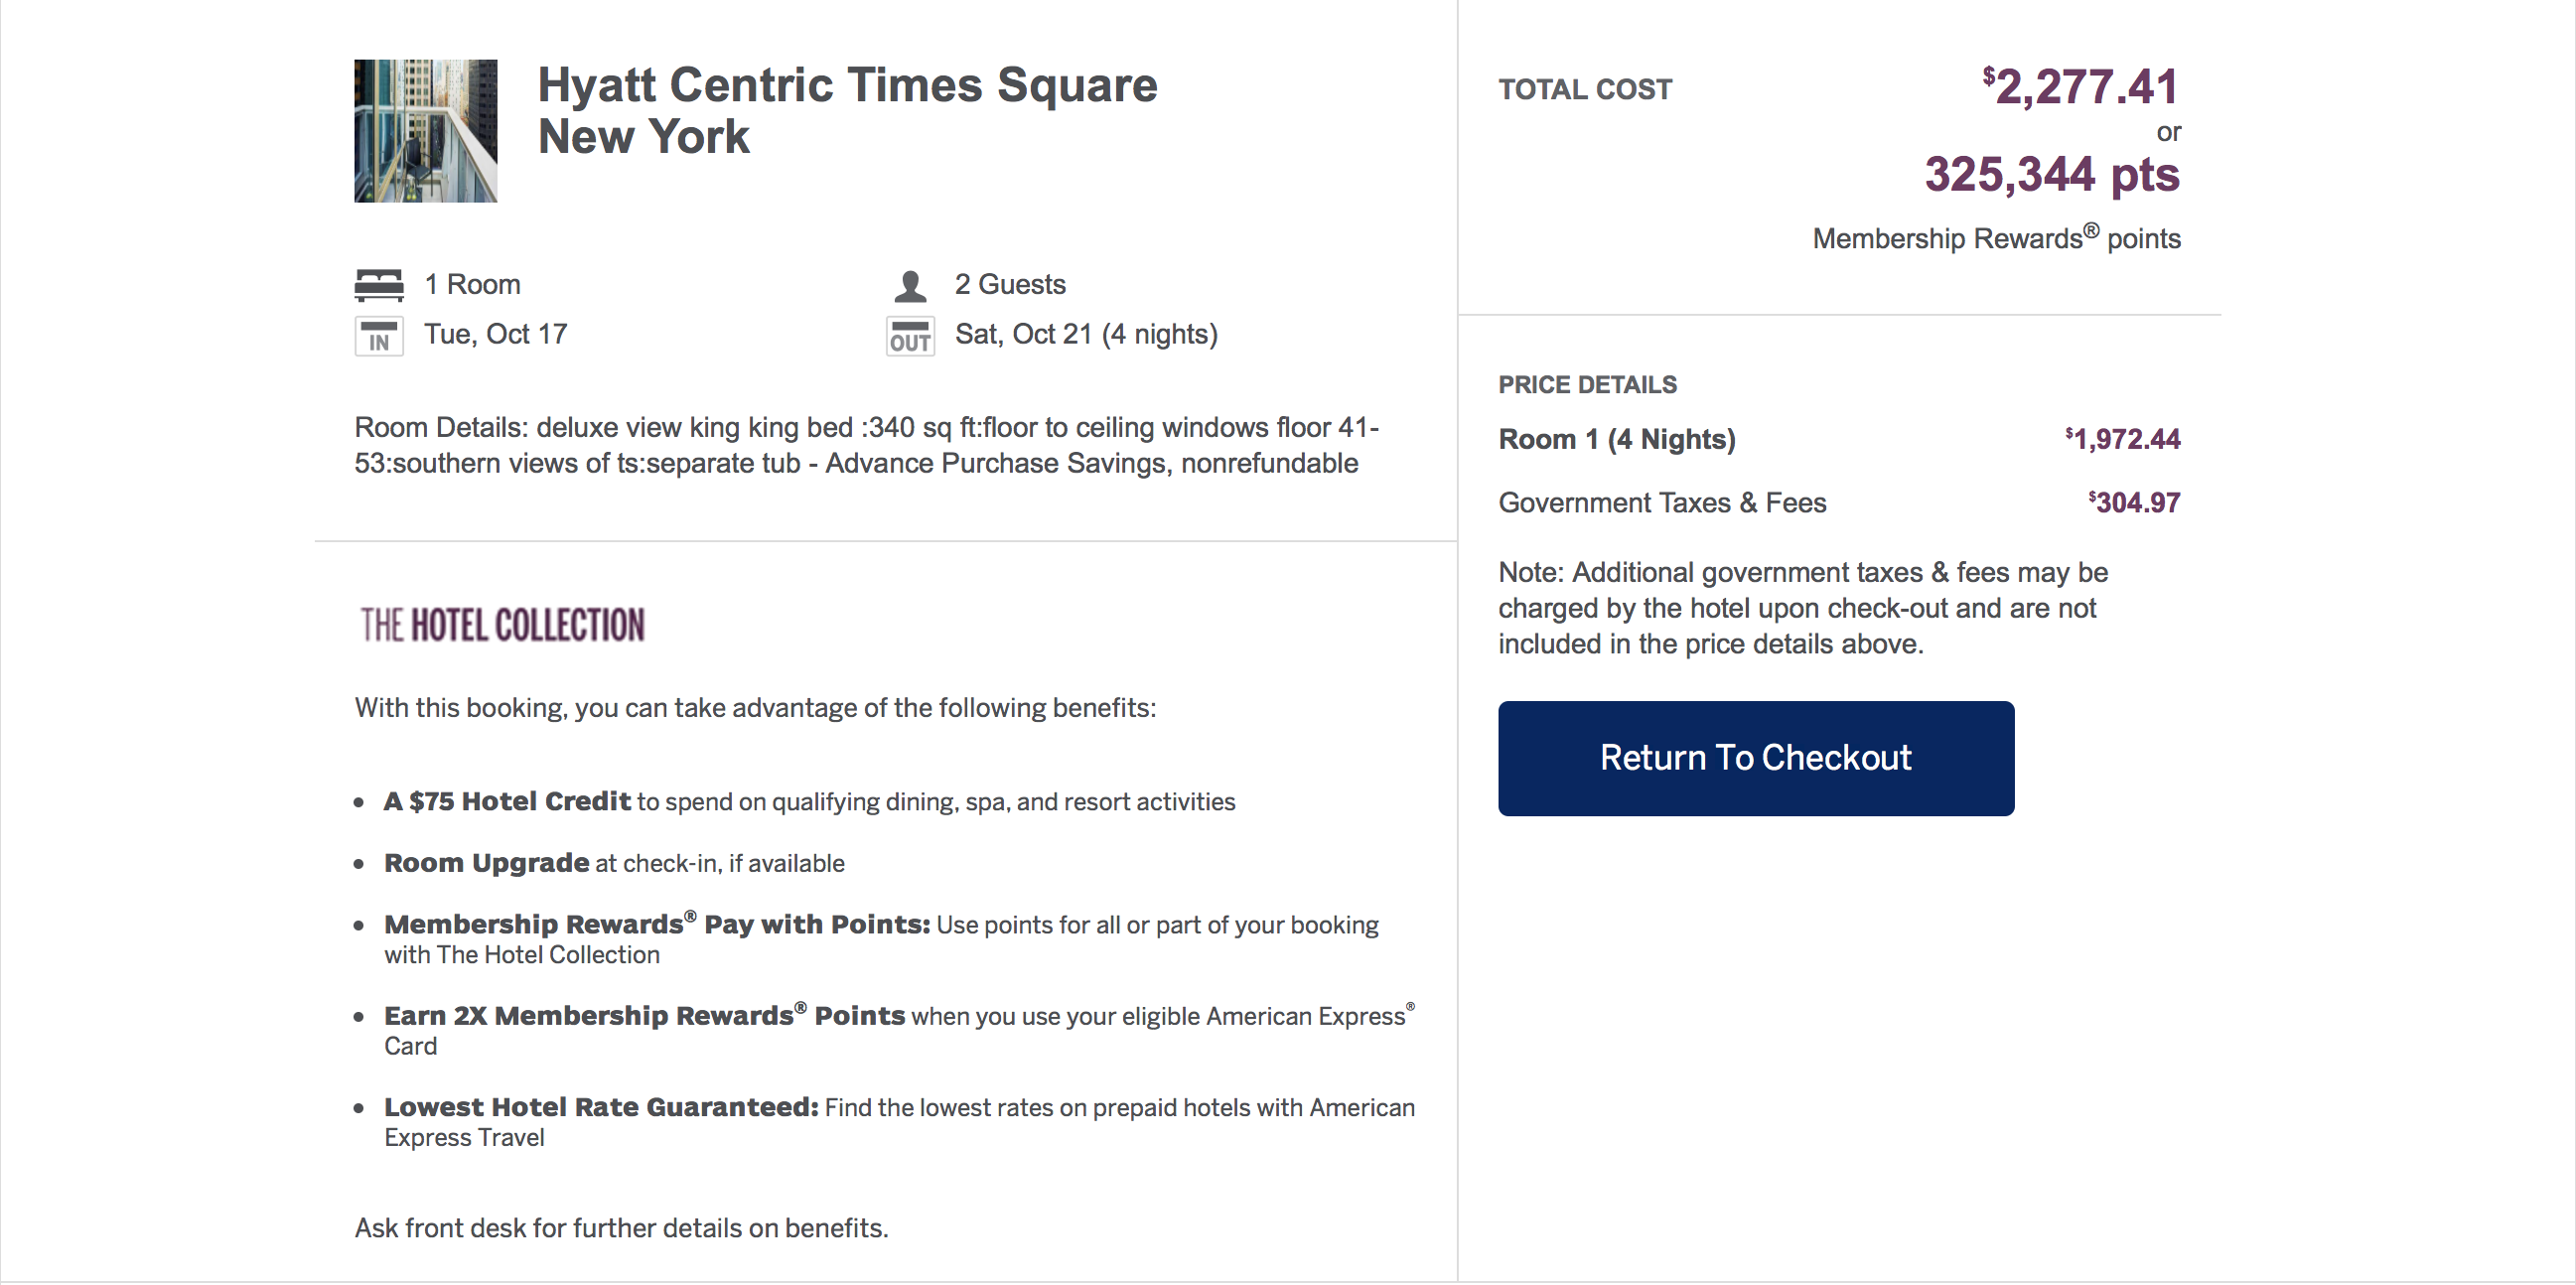 American Express Travel Points Have To Book Through American Express